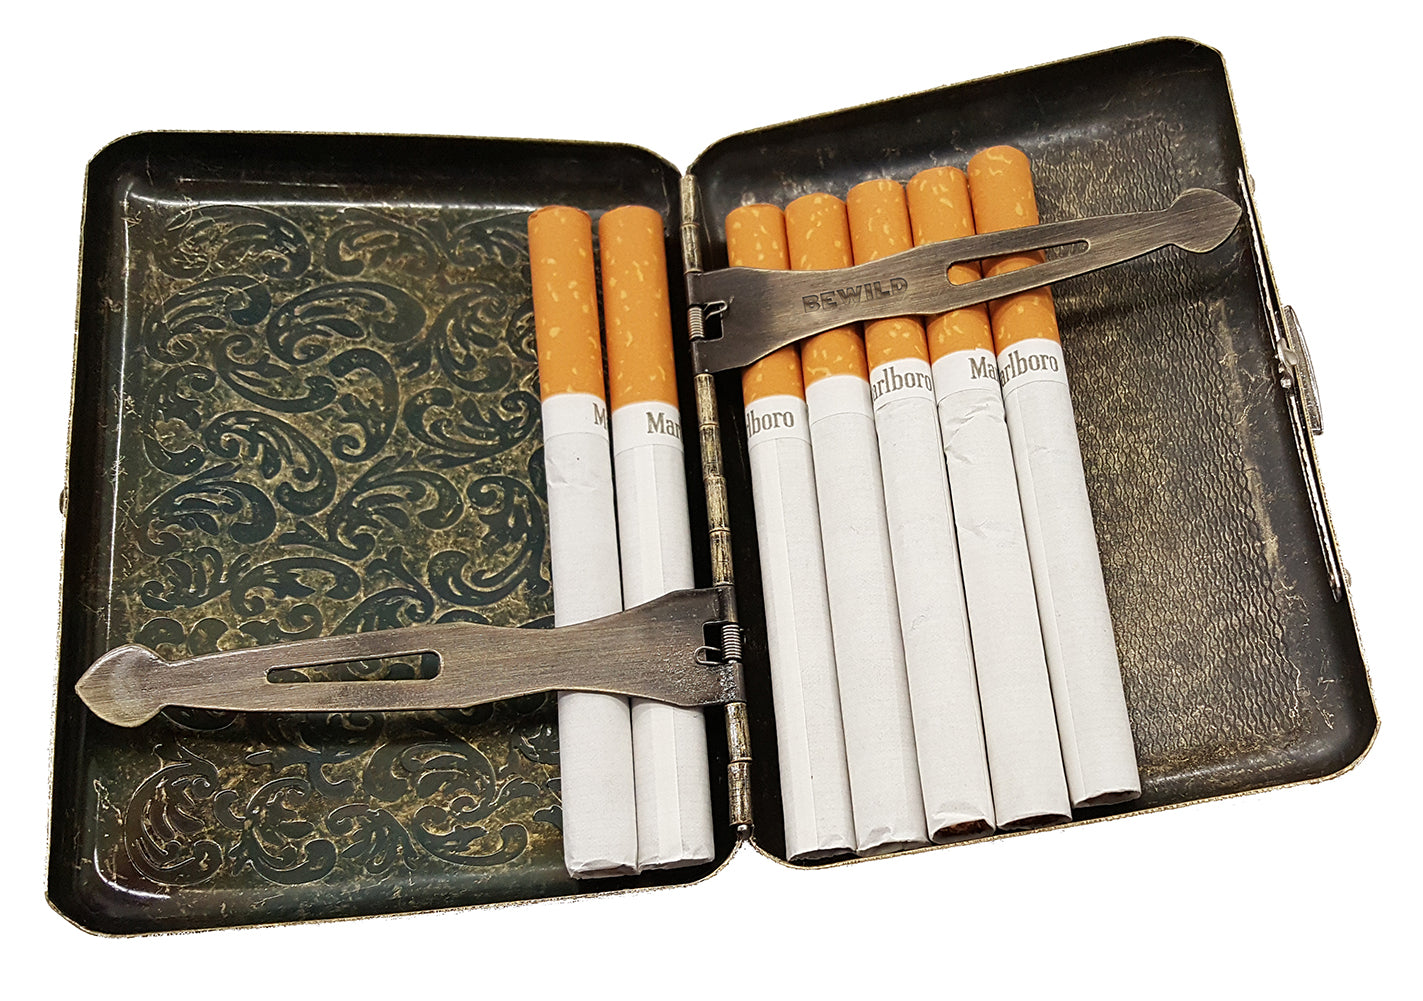 Cigarette Case (Regular Size Cigarettes) Inside